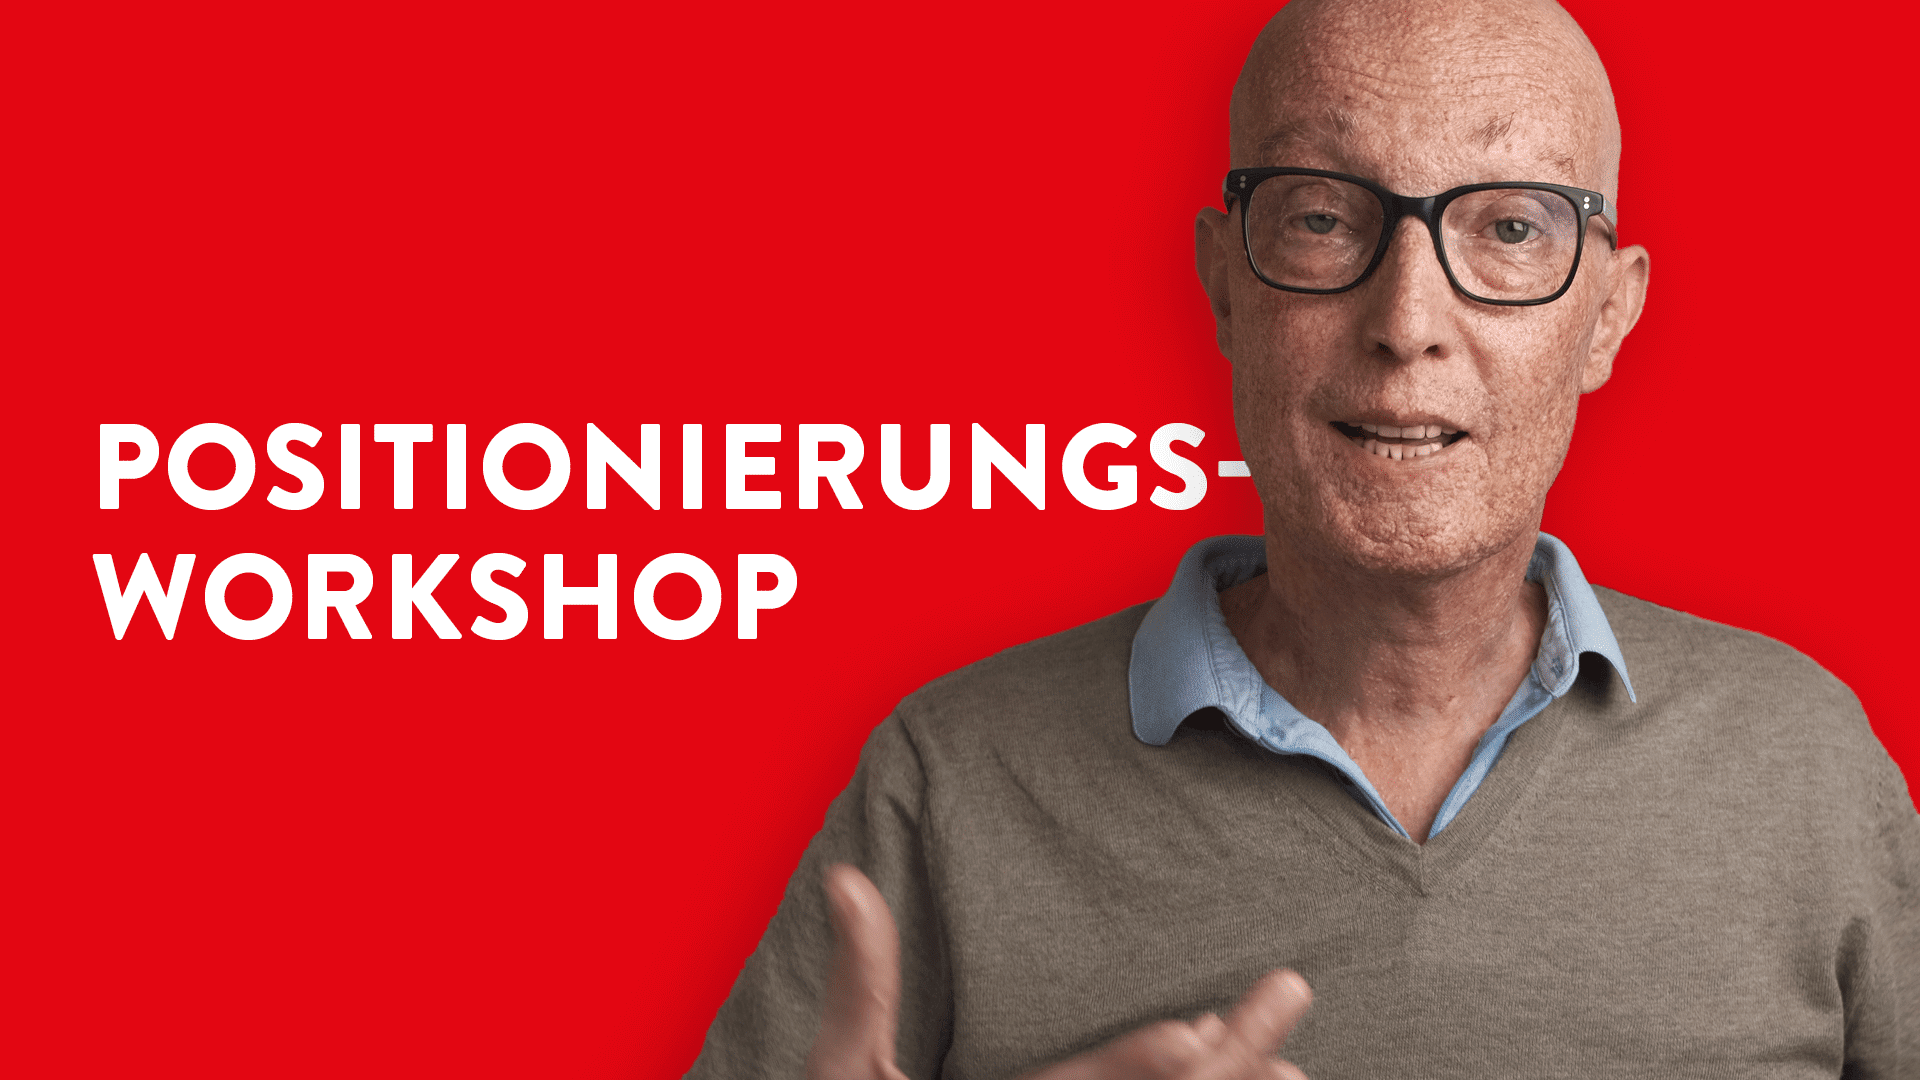 Positionierungs-Workshop